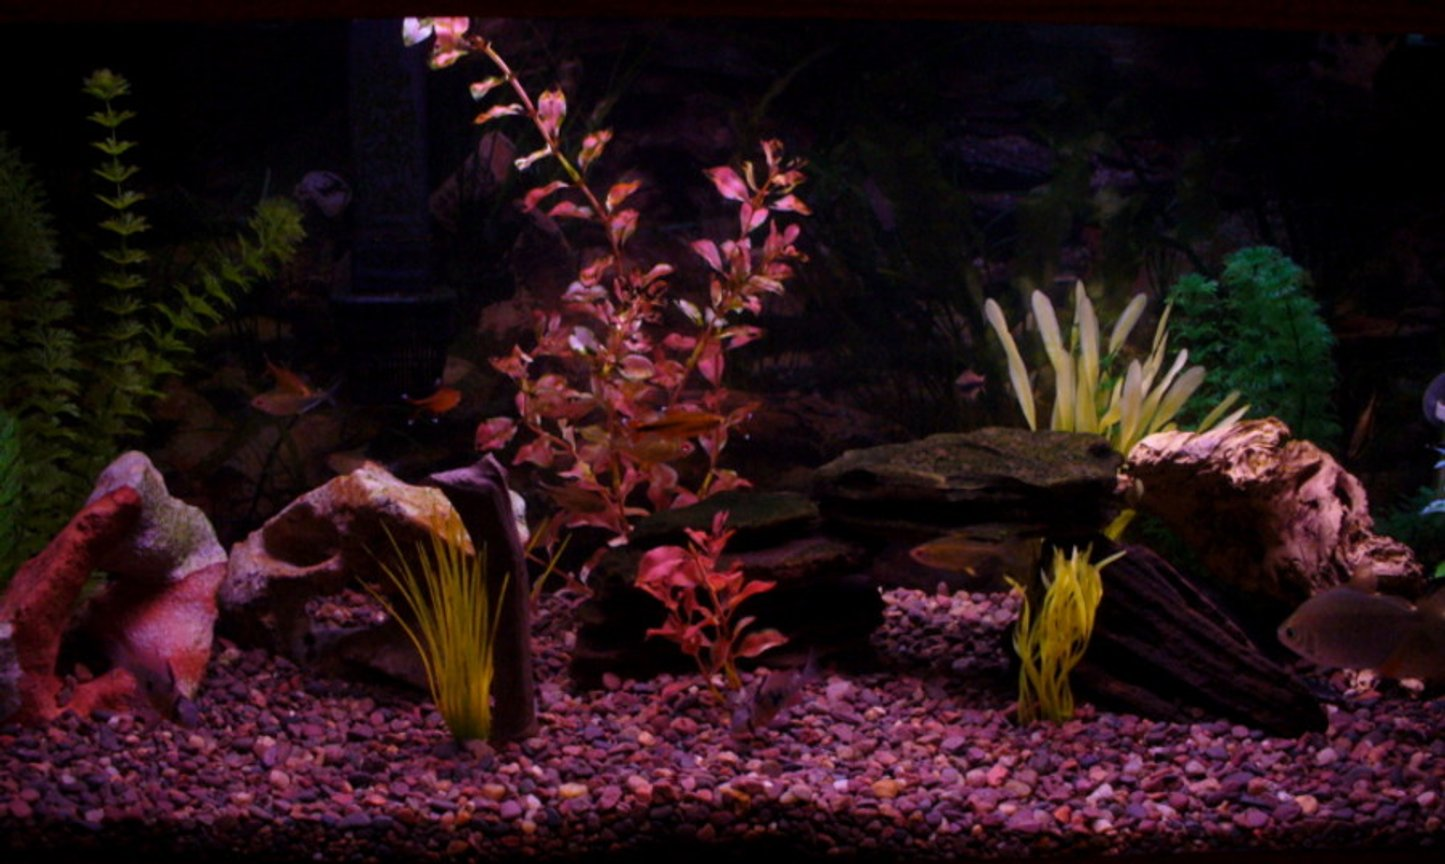 30 gallons freshwater fish tank (mostly fish and non-living decorations) - My tank. For some reason this website seems to darken the pictures. I'll have to play around with photoshop some more.